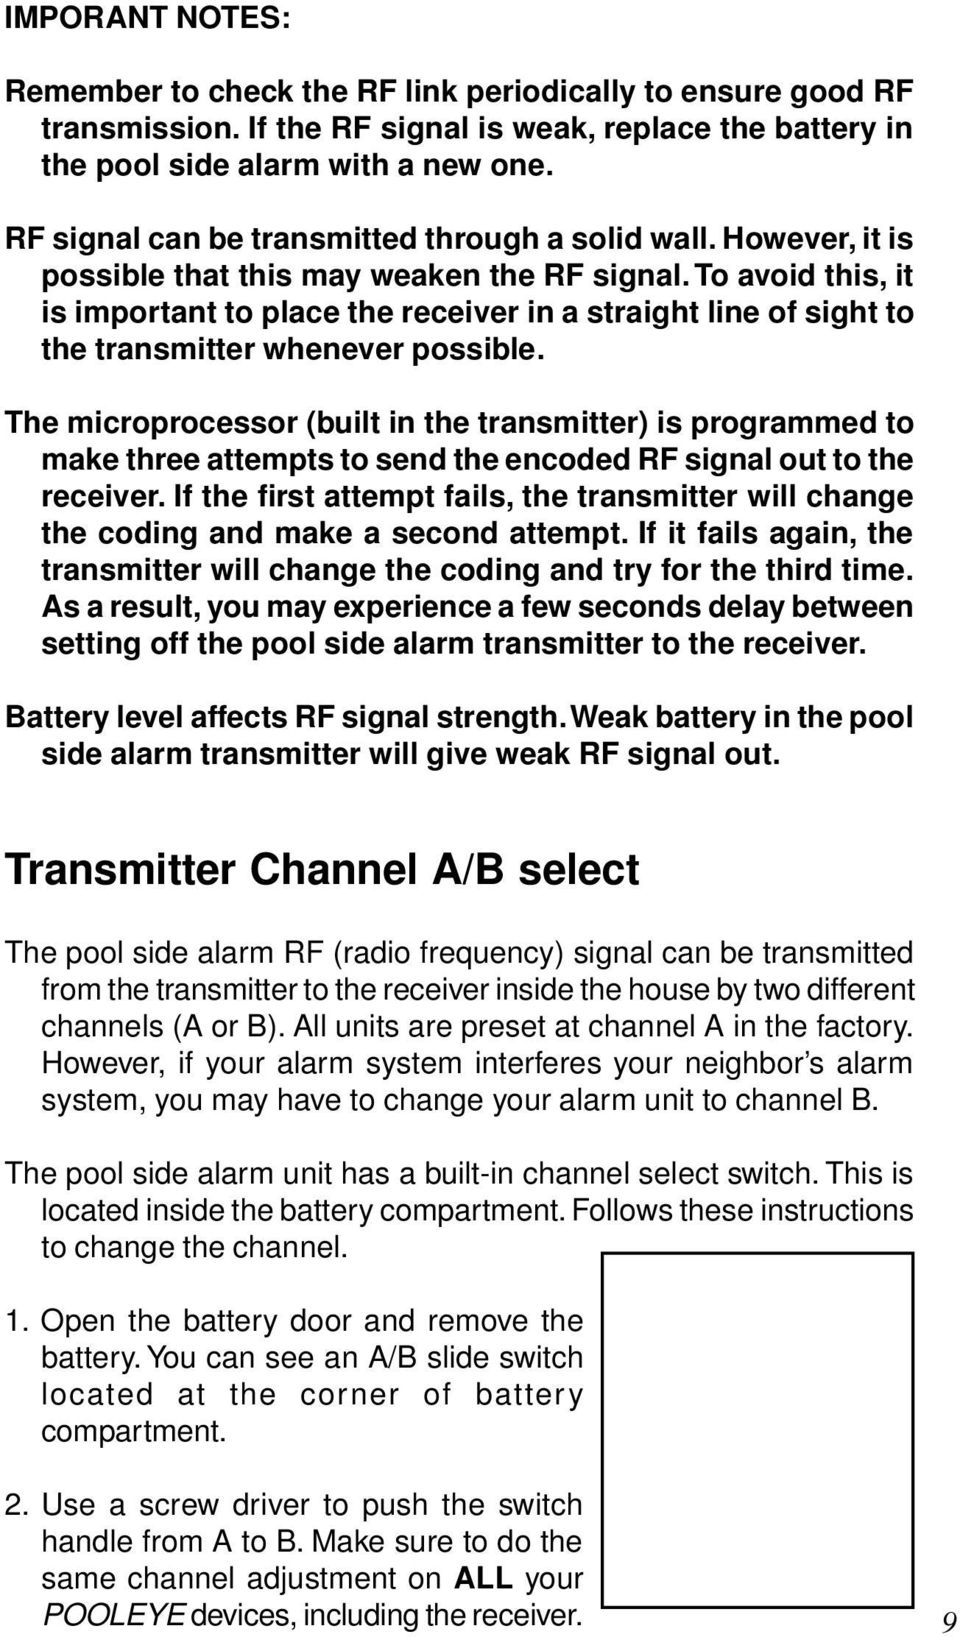 To avoid this, it is important to place the receiver in a straight line of sight to the transmitter whenever possible.